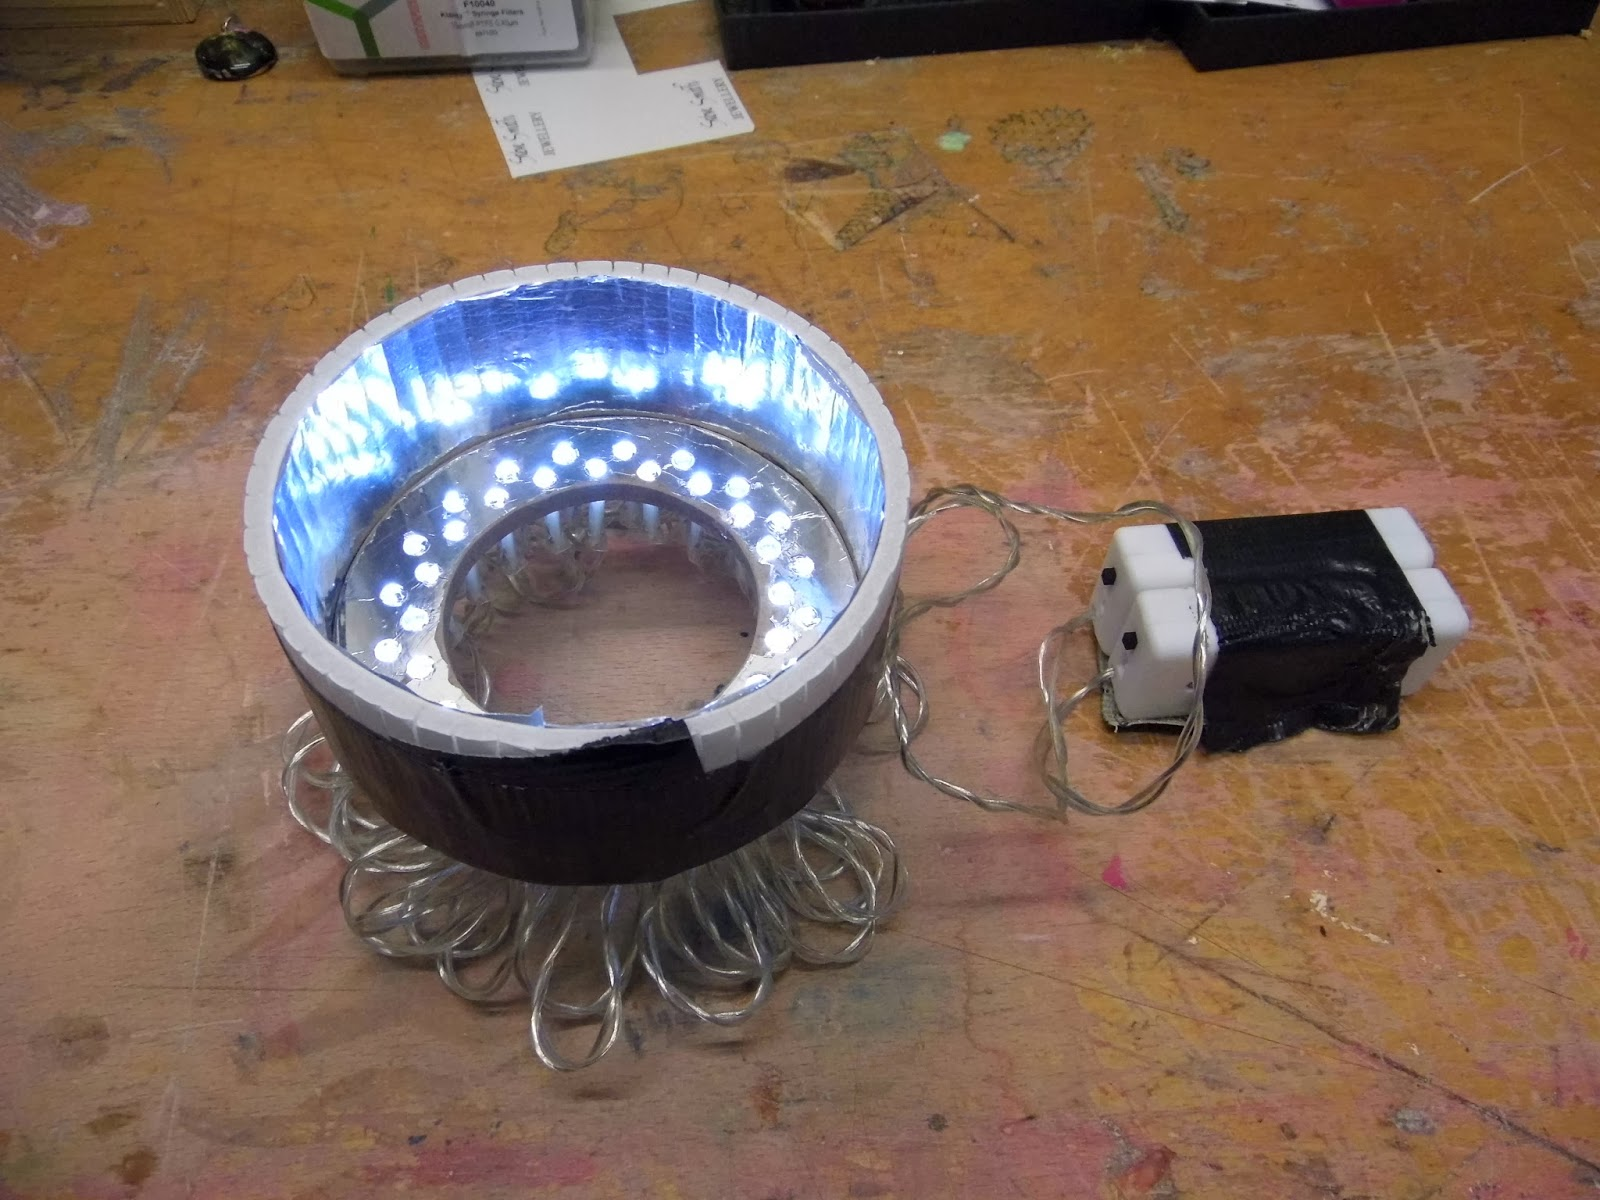 LED jewellery light